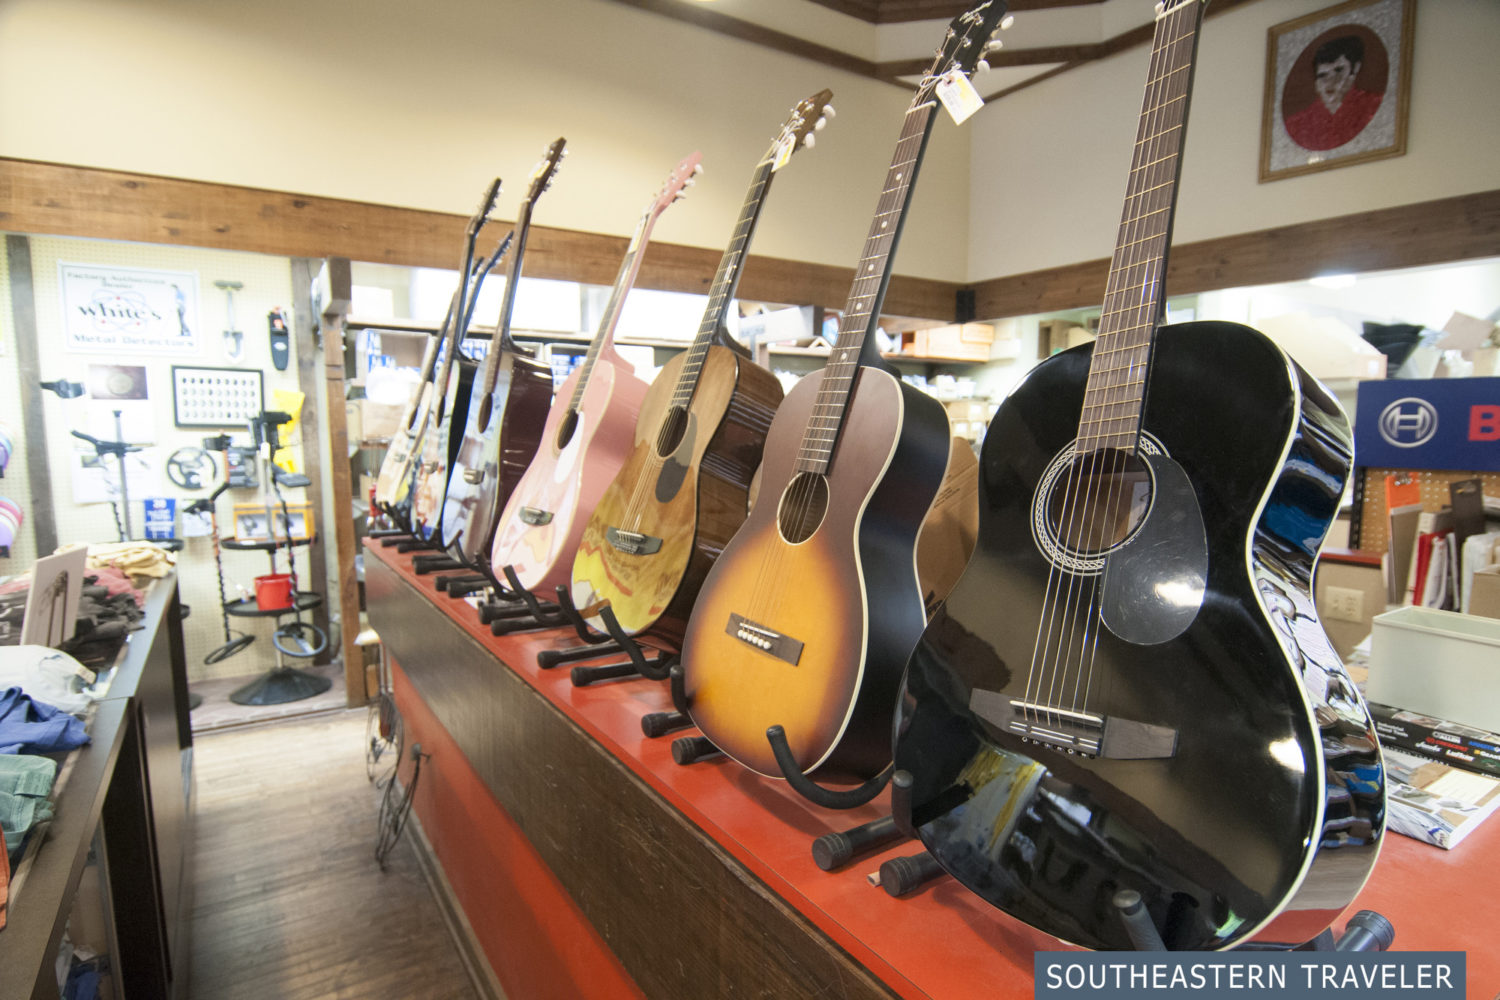 Guitars for sale at the Tupelo Hardware Company in Tupelo, Mississippi